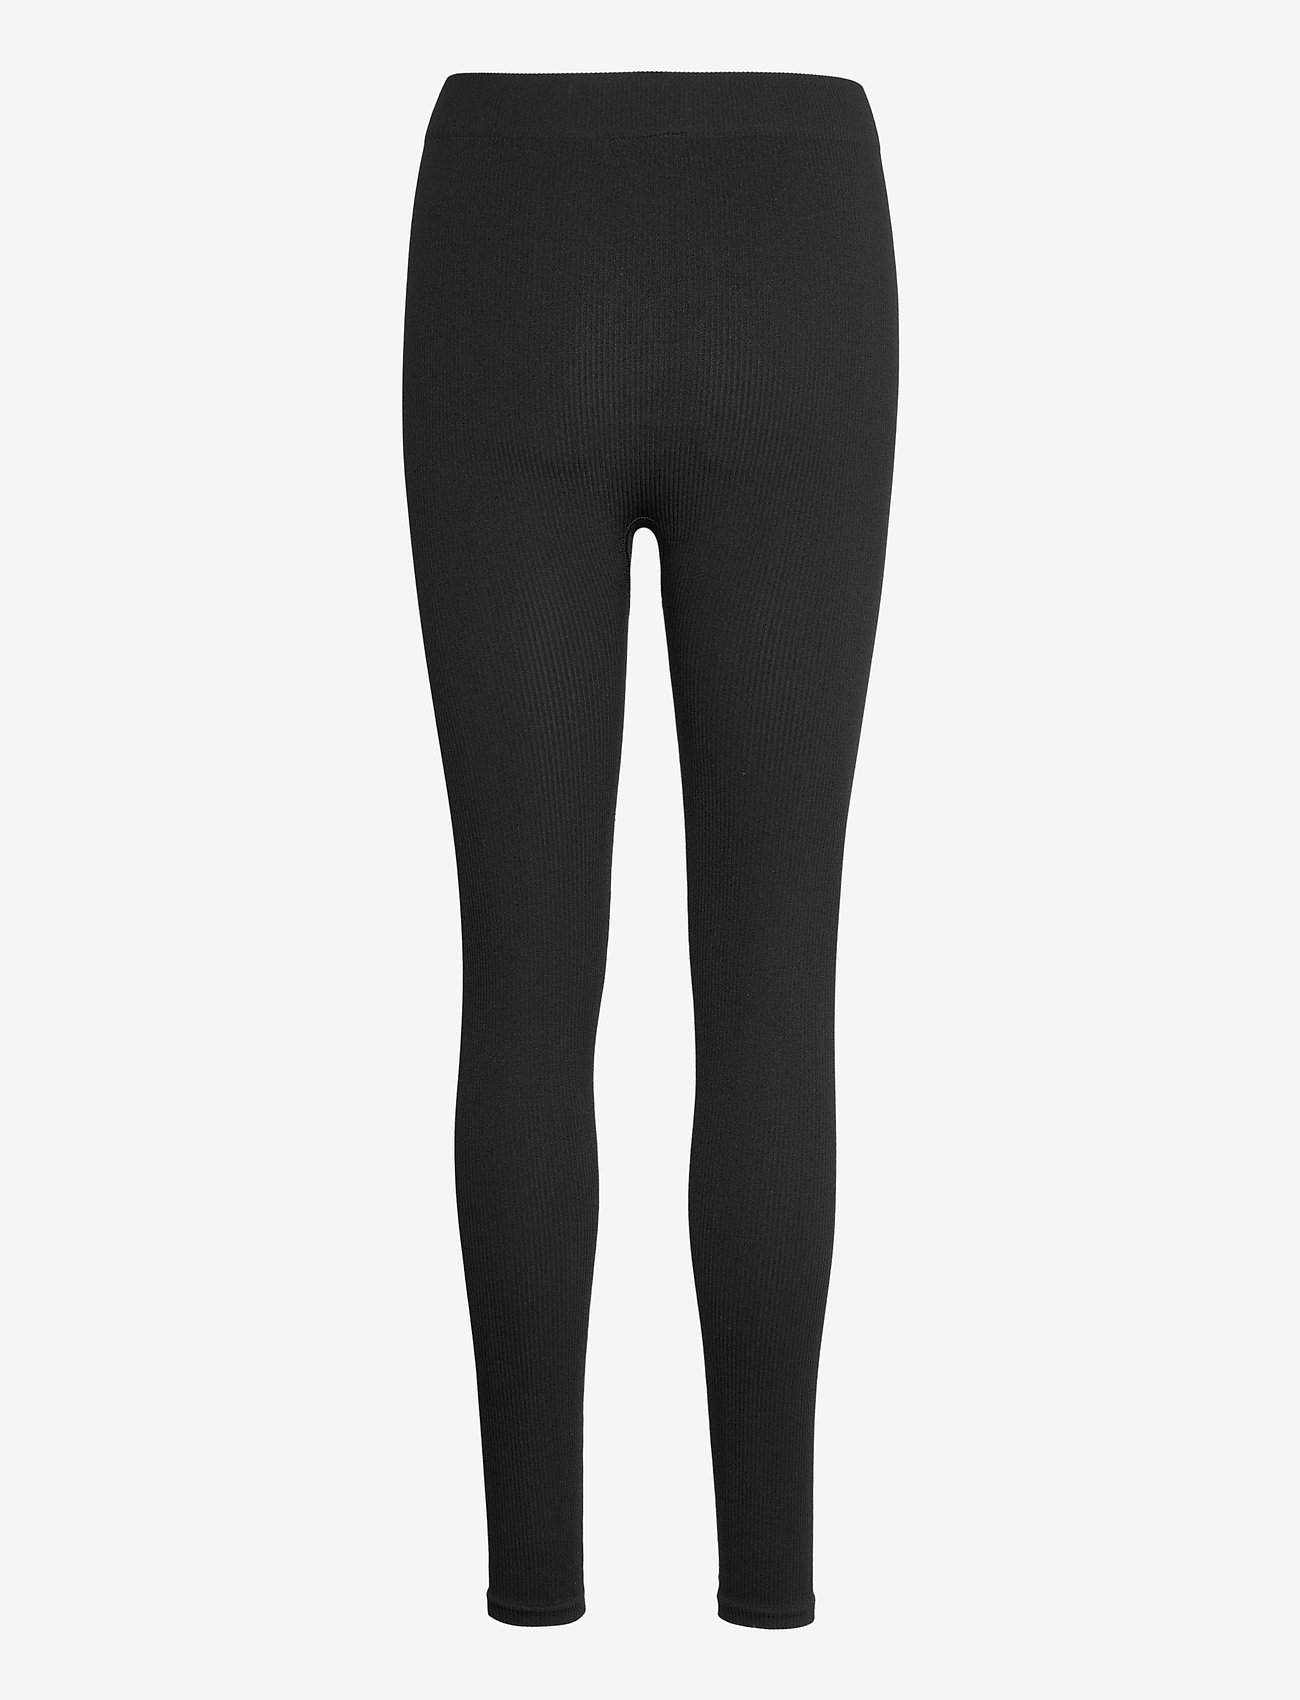 Vero Moda - VMEVE LEGGING - leggings - black - 1